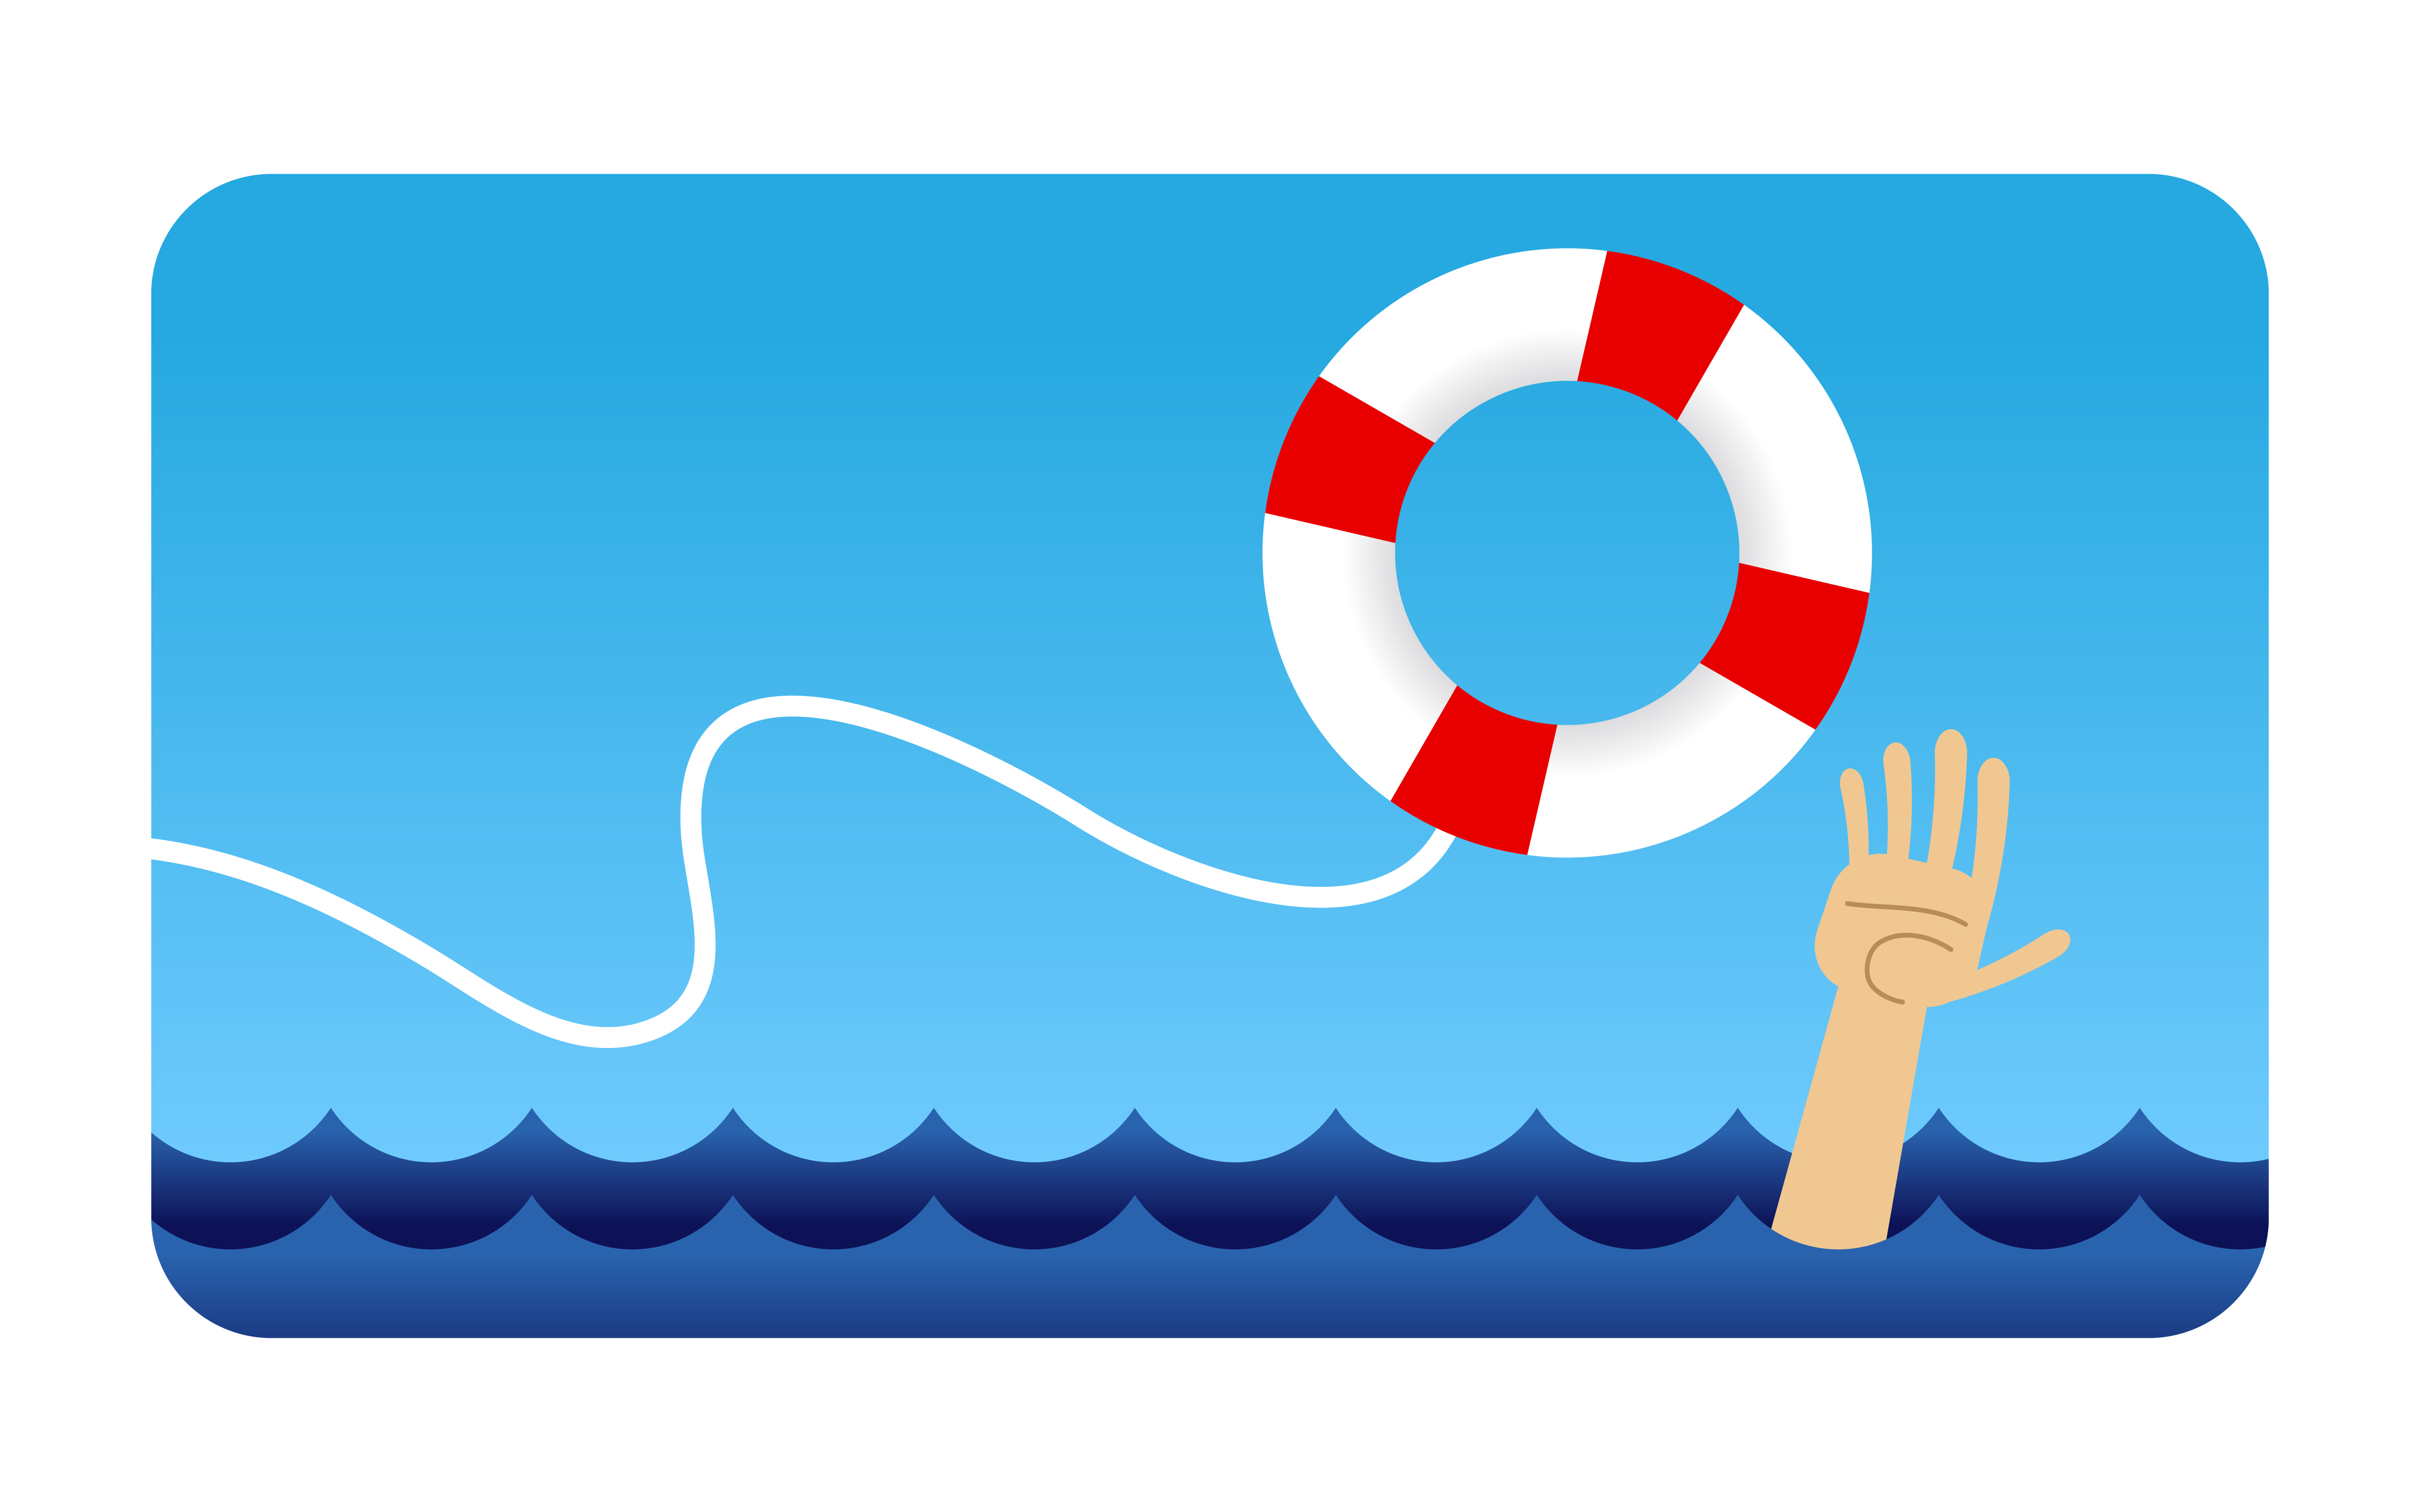 Download lifebuoy clipart png photo   TOPpng